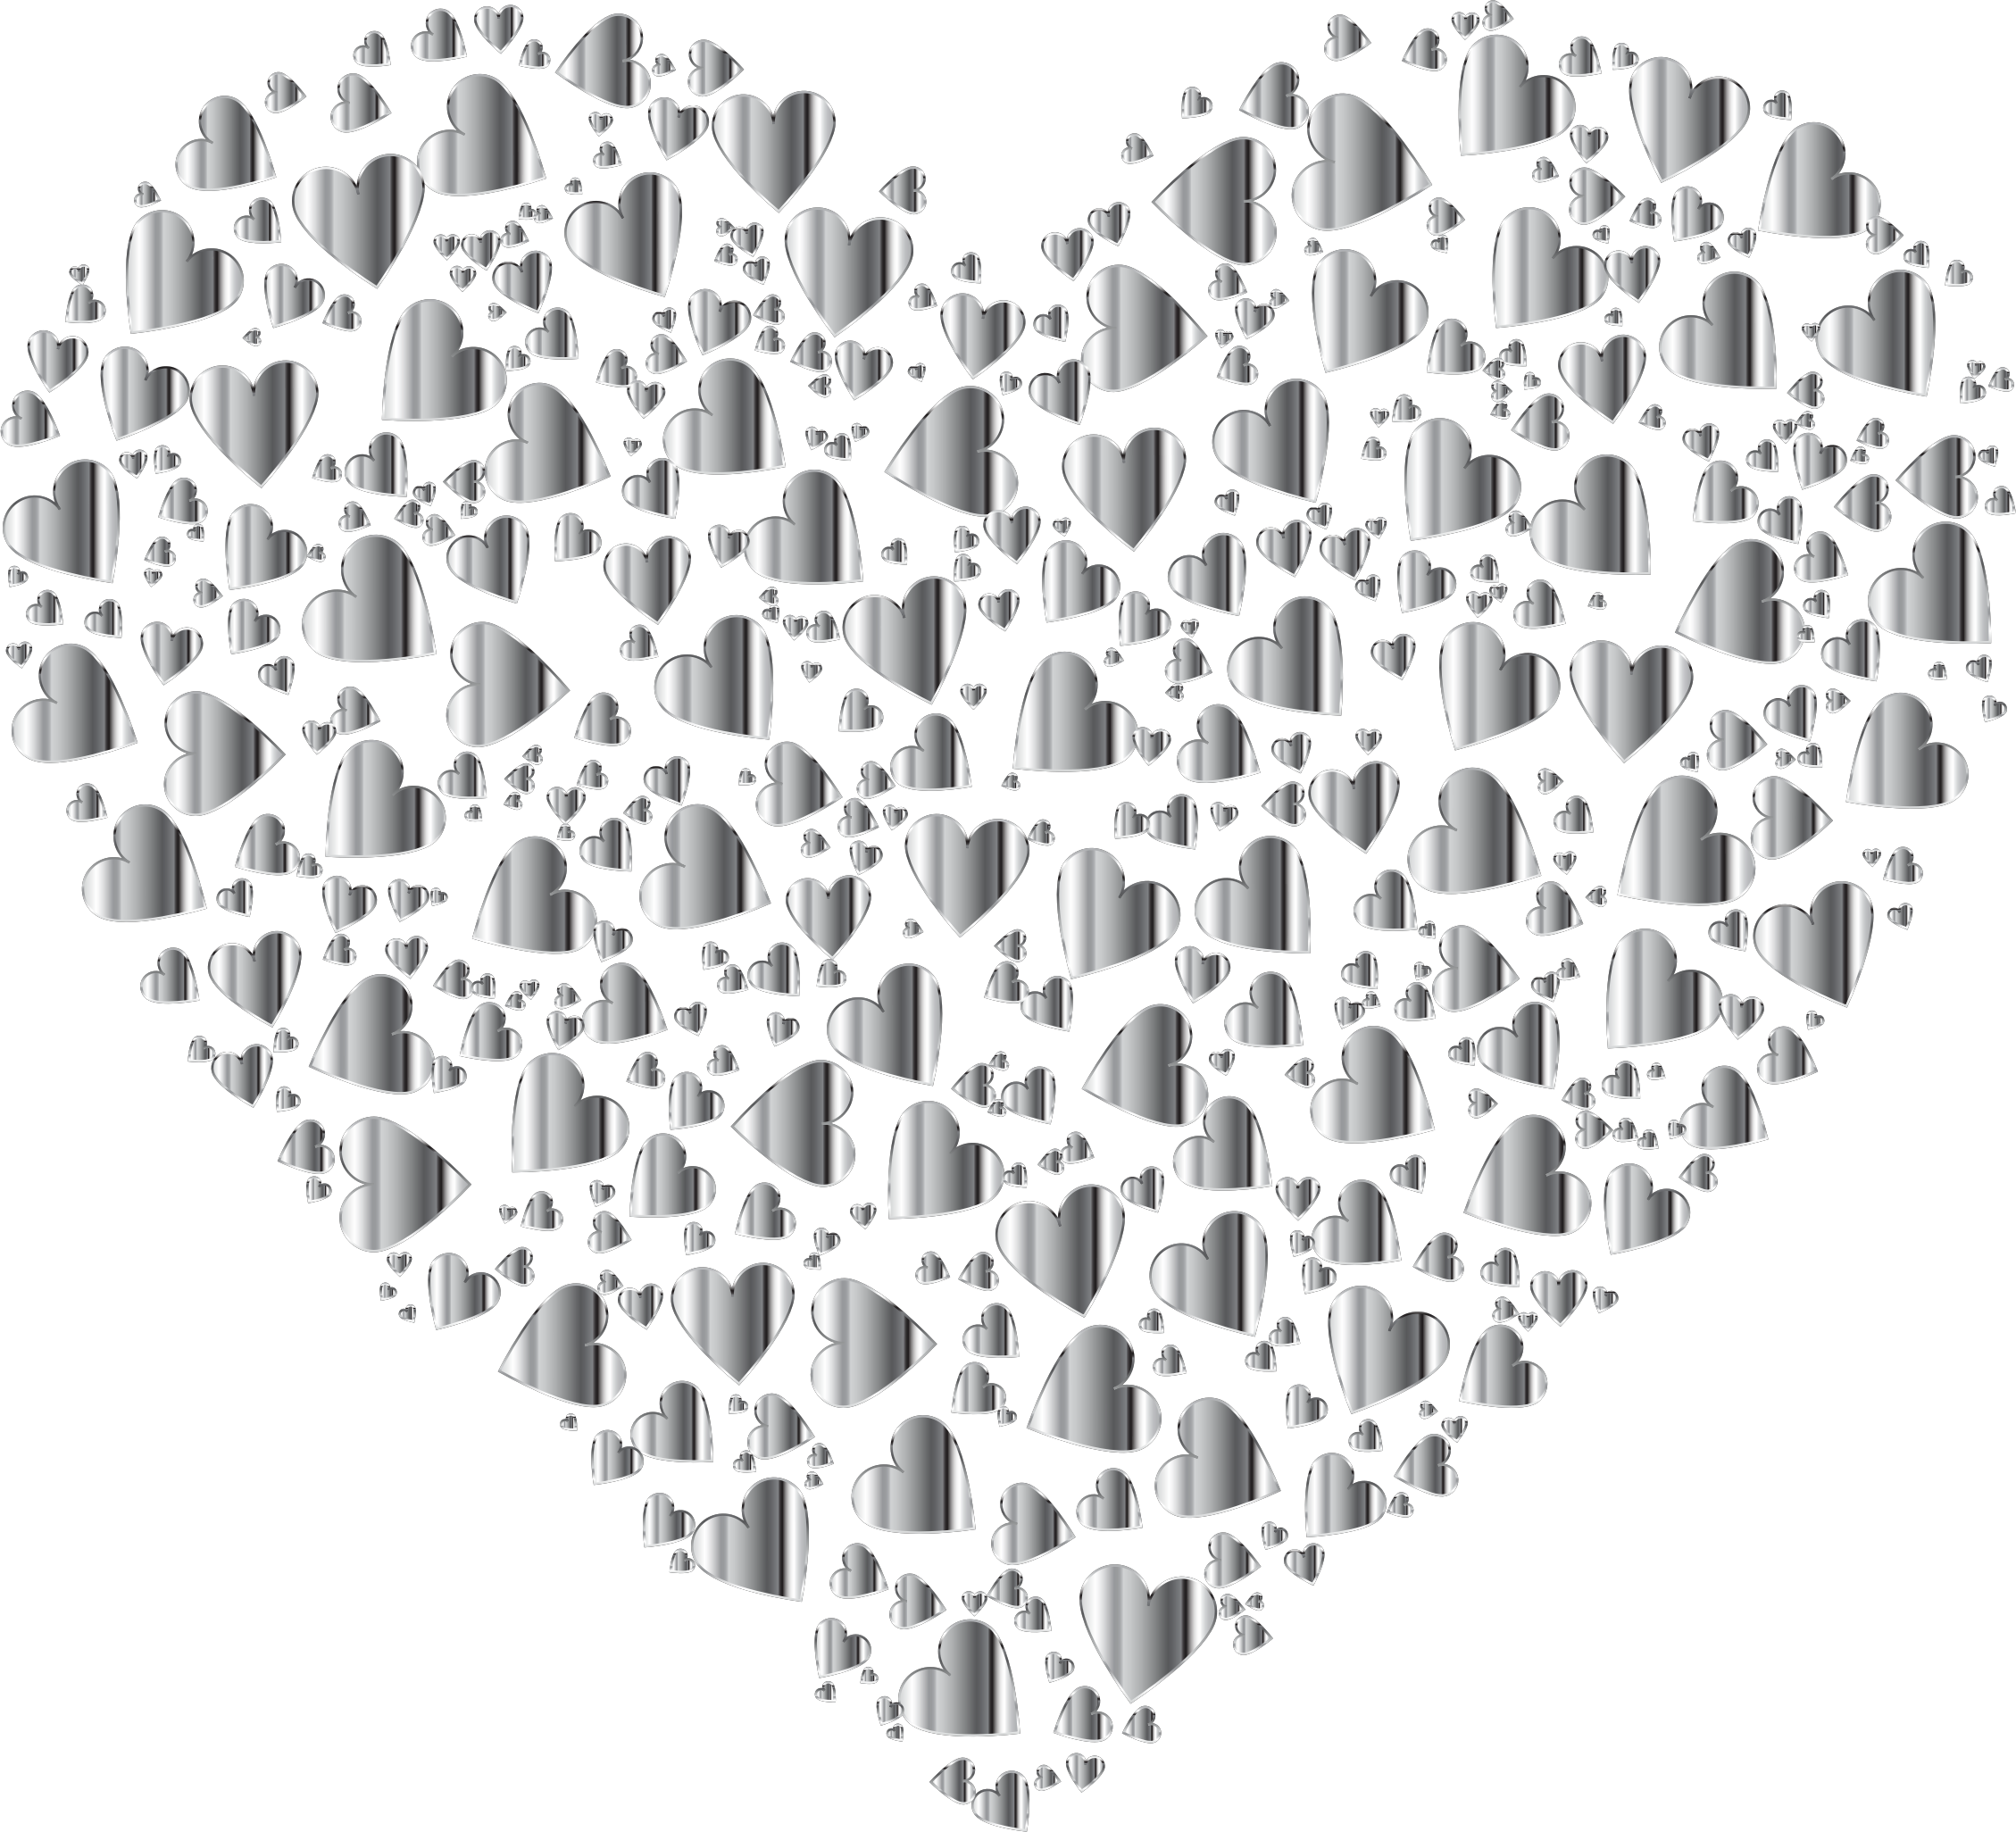 London clipart heart. Chaotic colorful fractal no